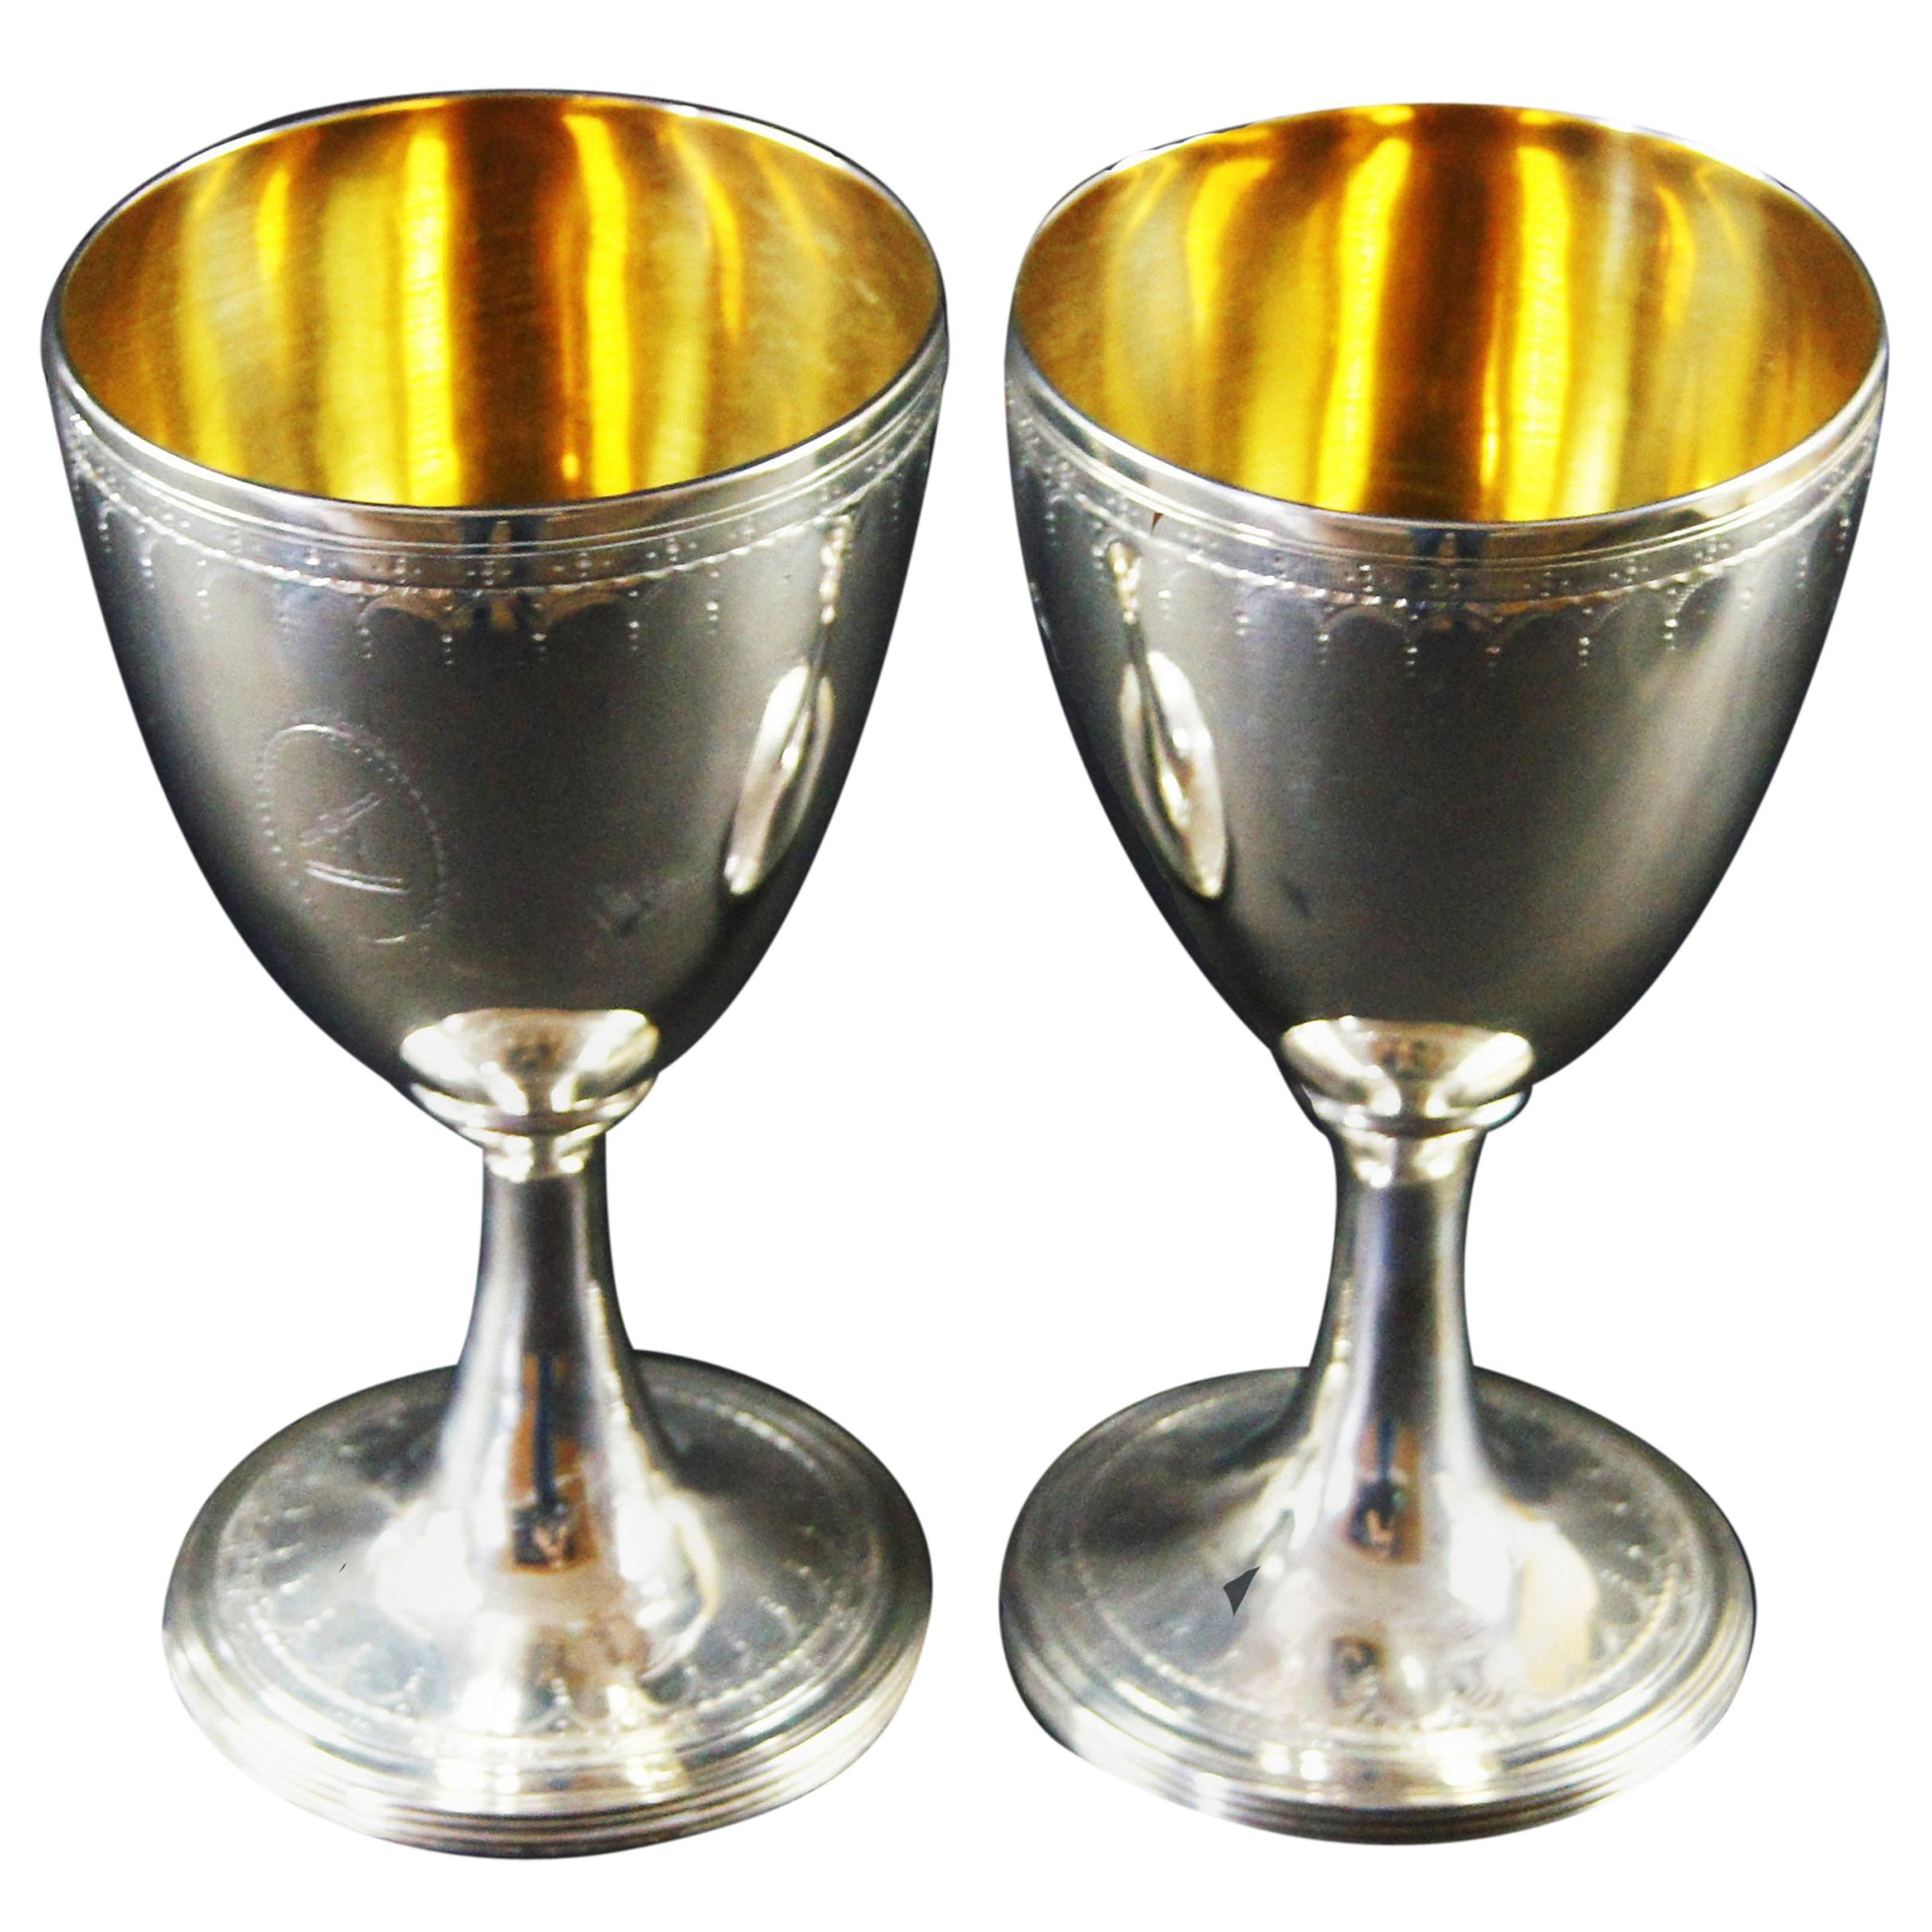 Late 18th Century Pair of George III Silver Wine Goblets